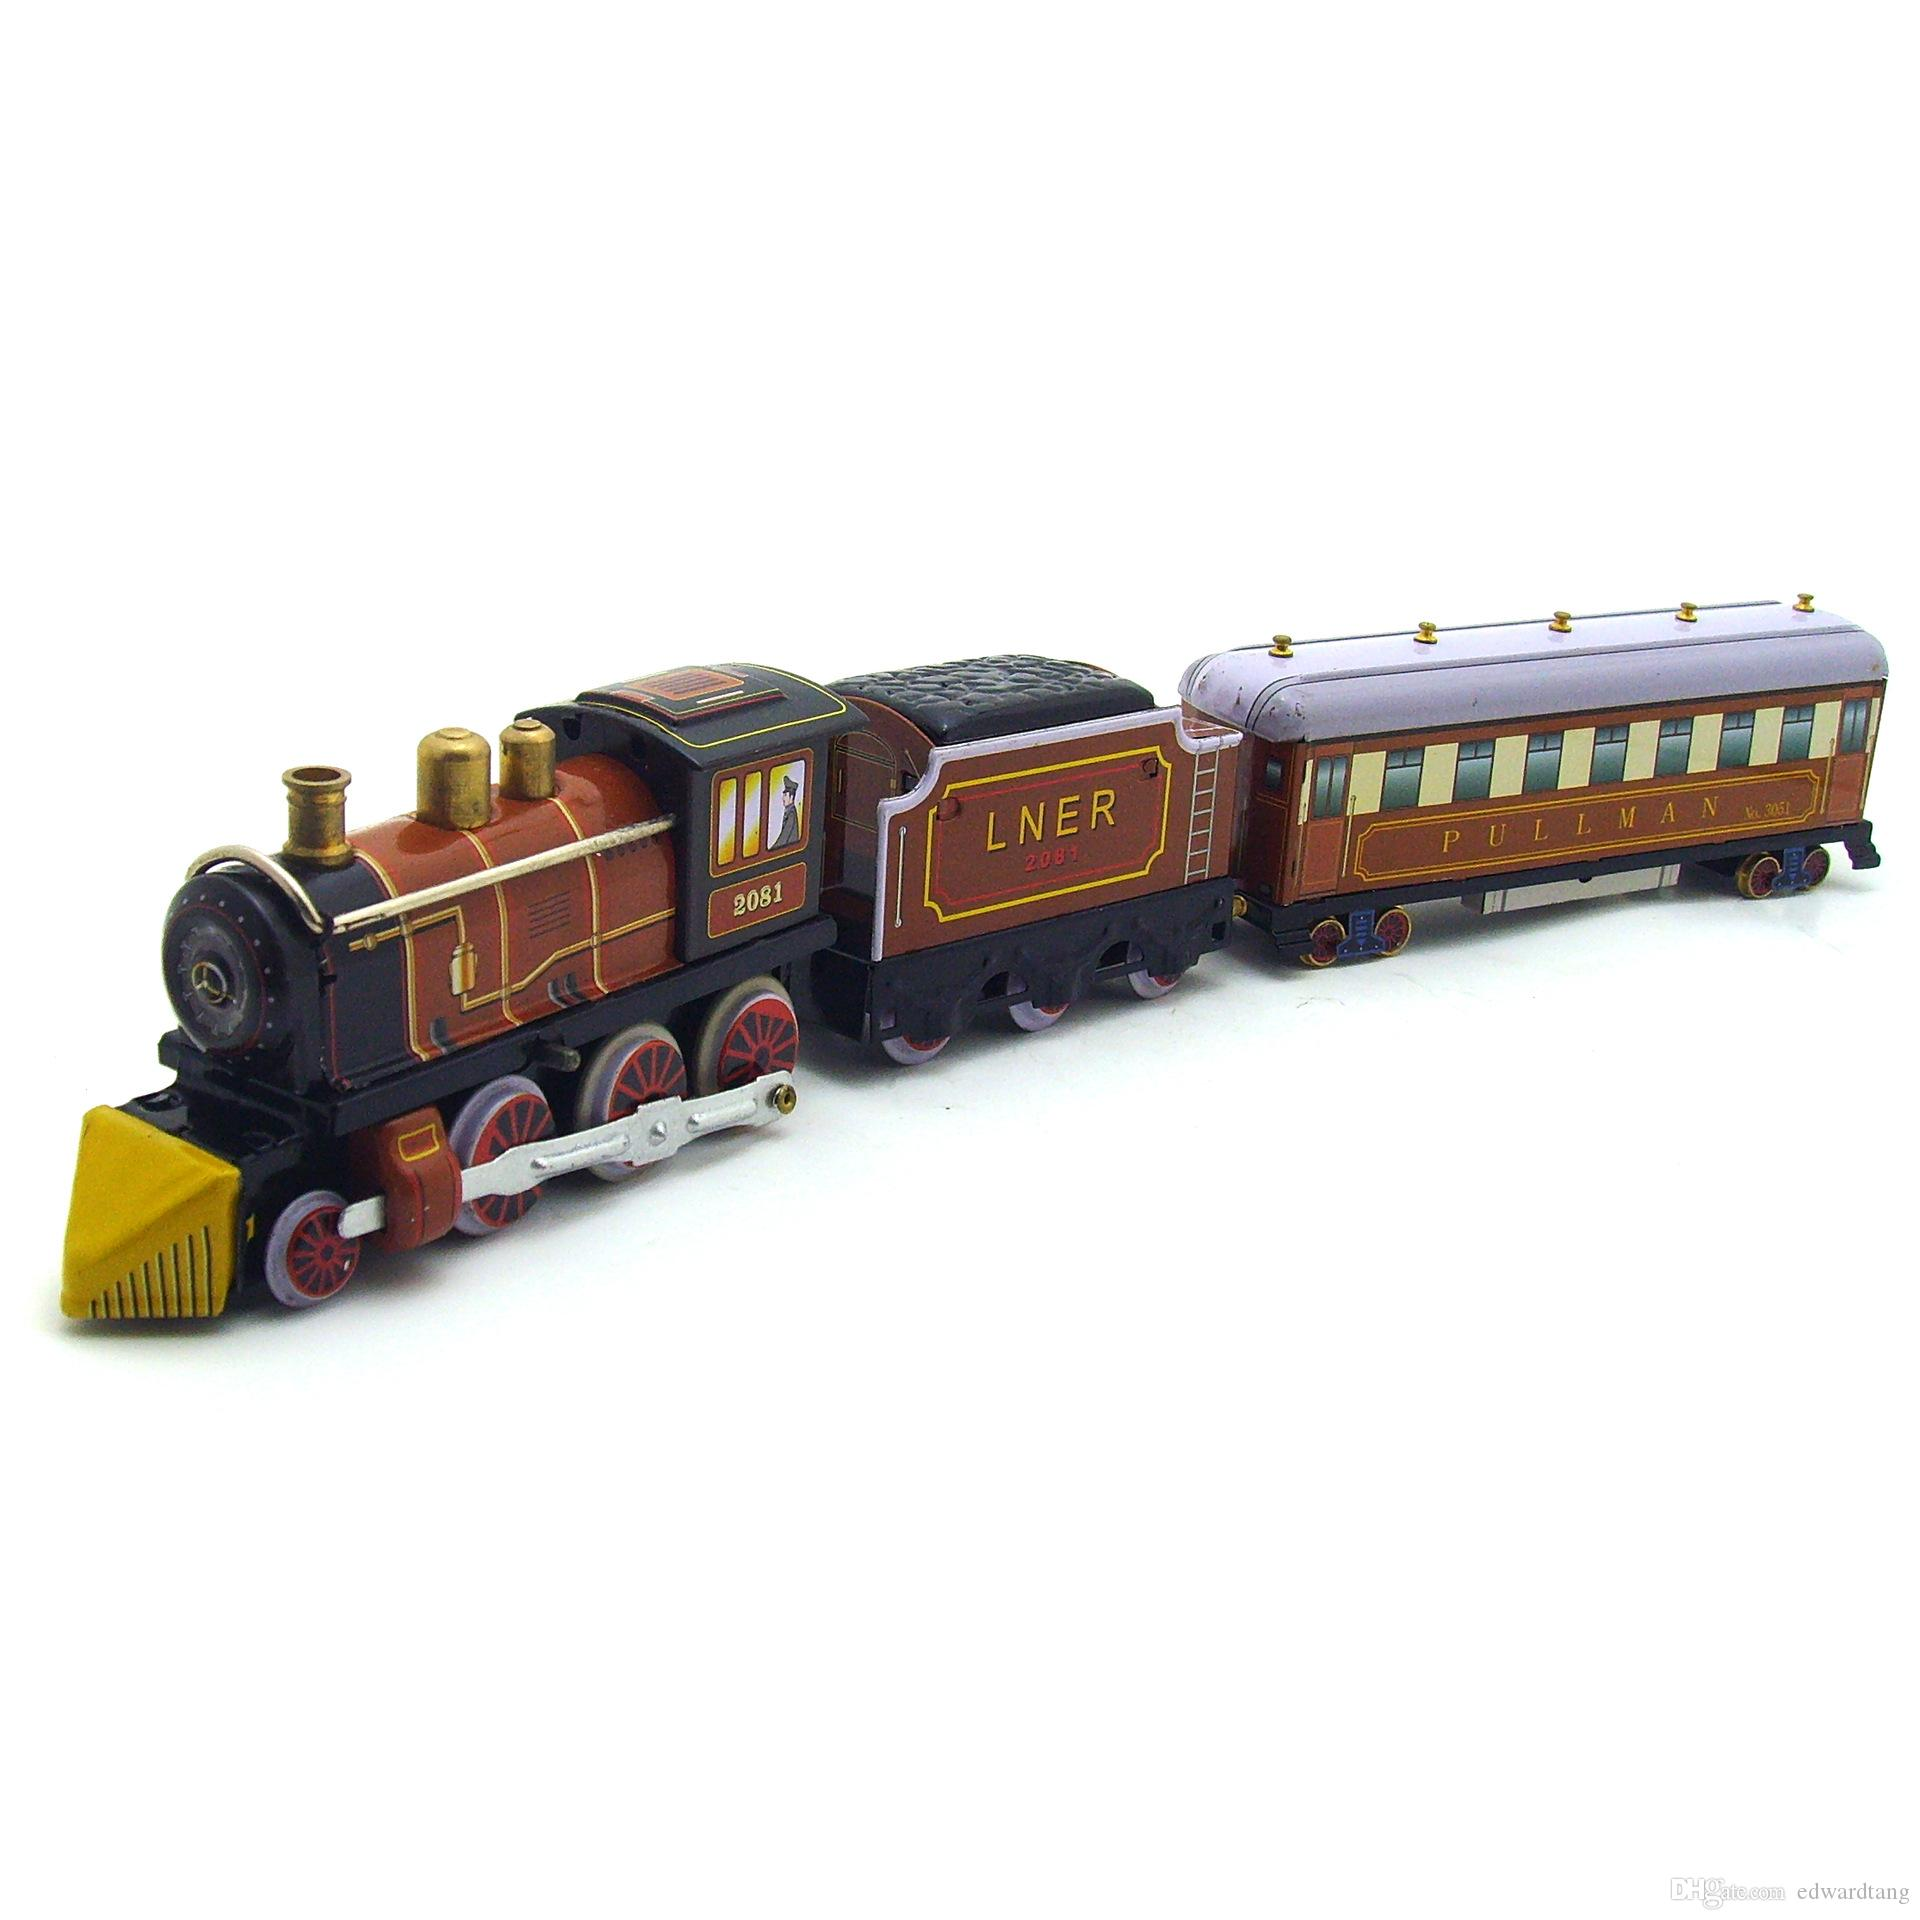 bd6a1fb280 Cartoon Winding-upTin Steam Train, Big Size,Manual Handcraft,Nostalgic  Toy,Home Accessories, Kid Party Birthday Gift, Collecting,Decoration